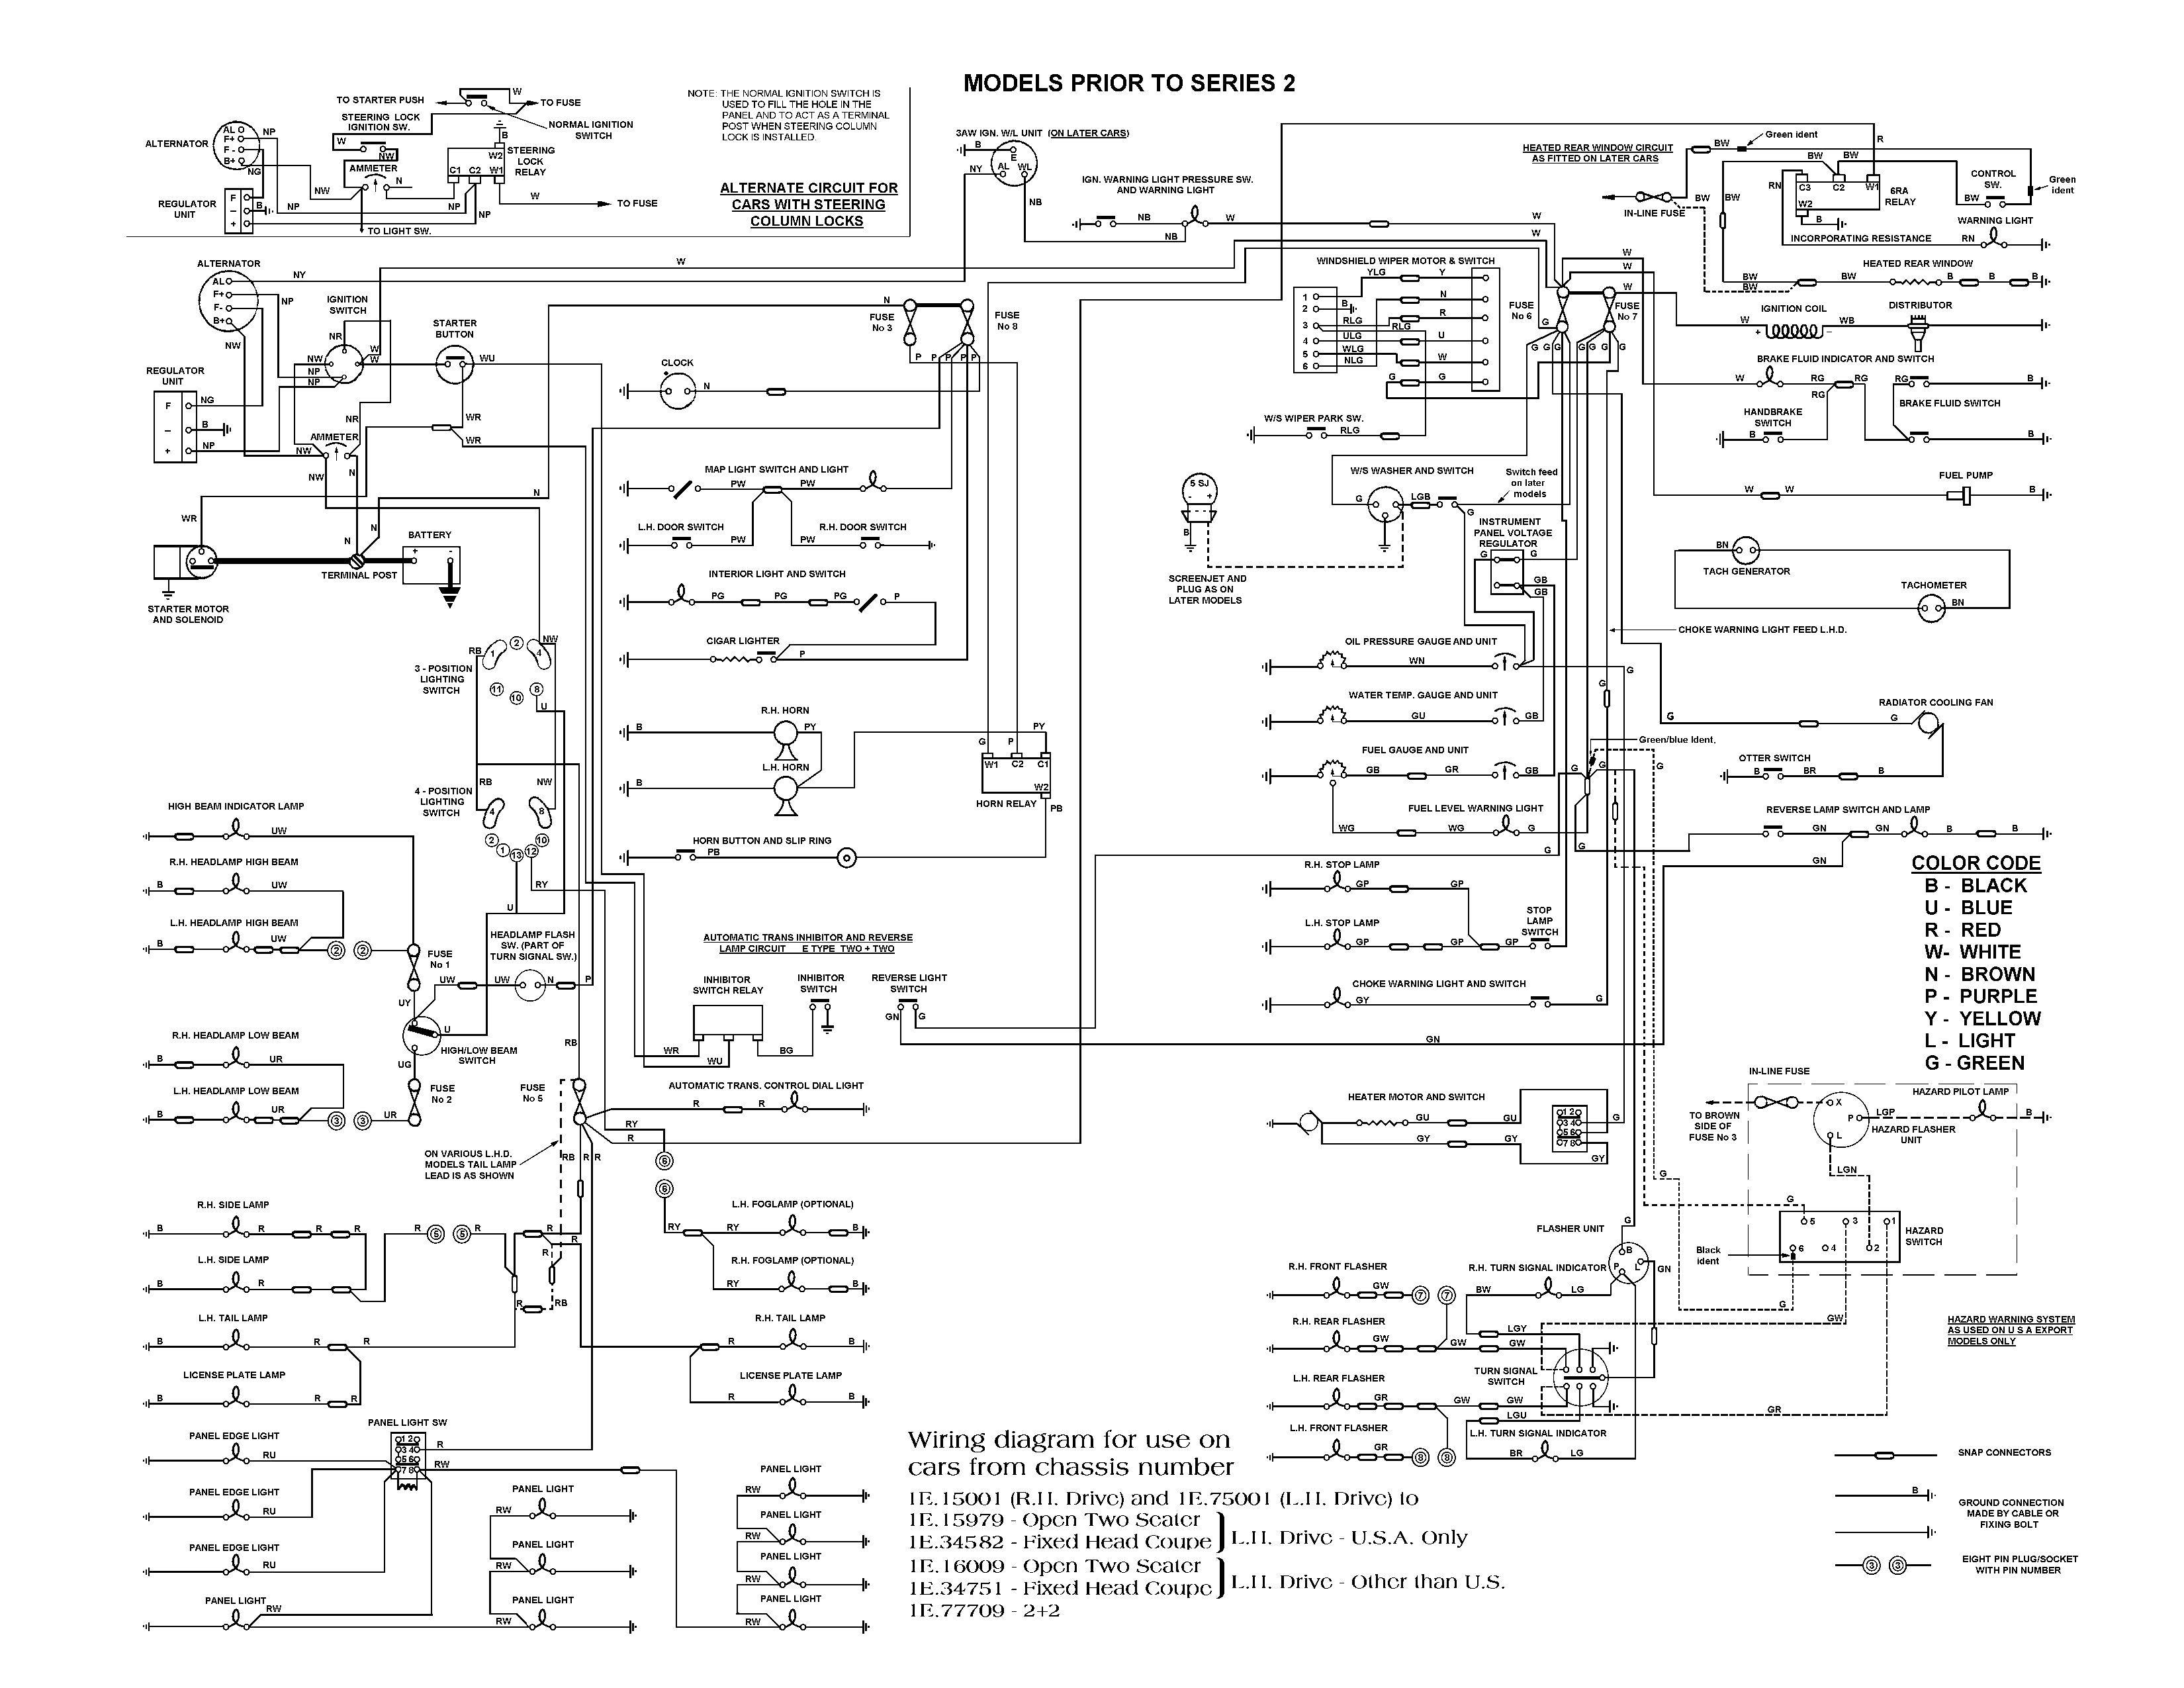 kbmd 240d wiring diagram Collection-Auto Meter Wiring Diagram Wiring Diagram Auto Gauge Tachometer New Autometer Tach Wiring 14-t